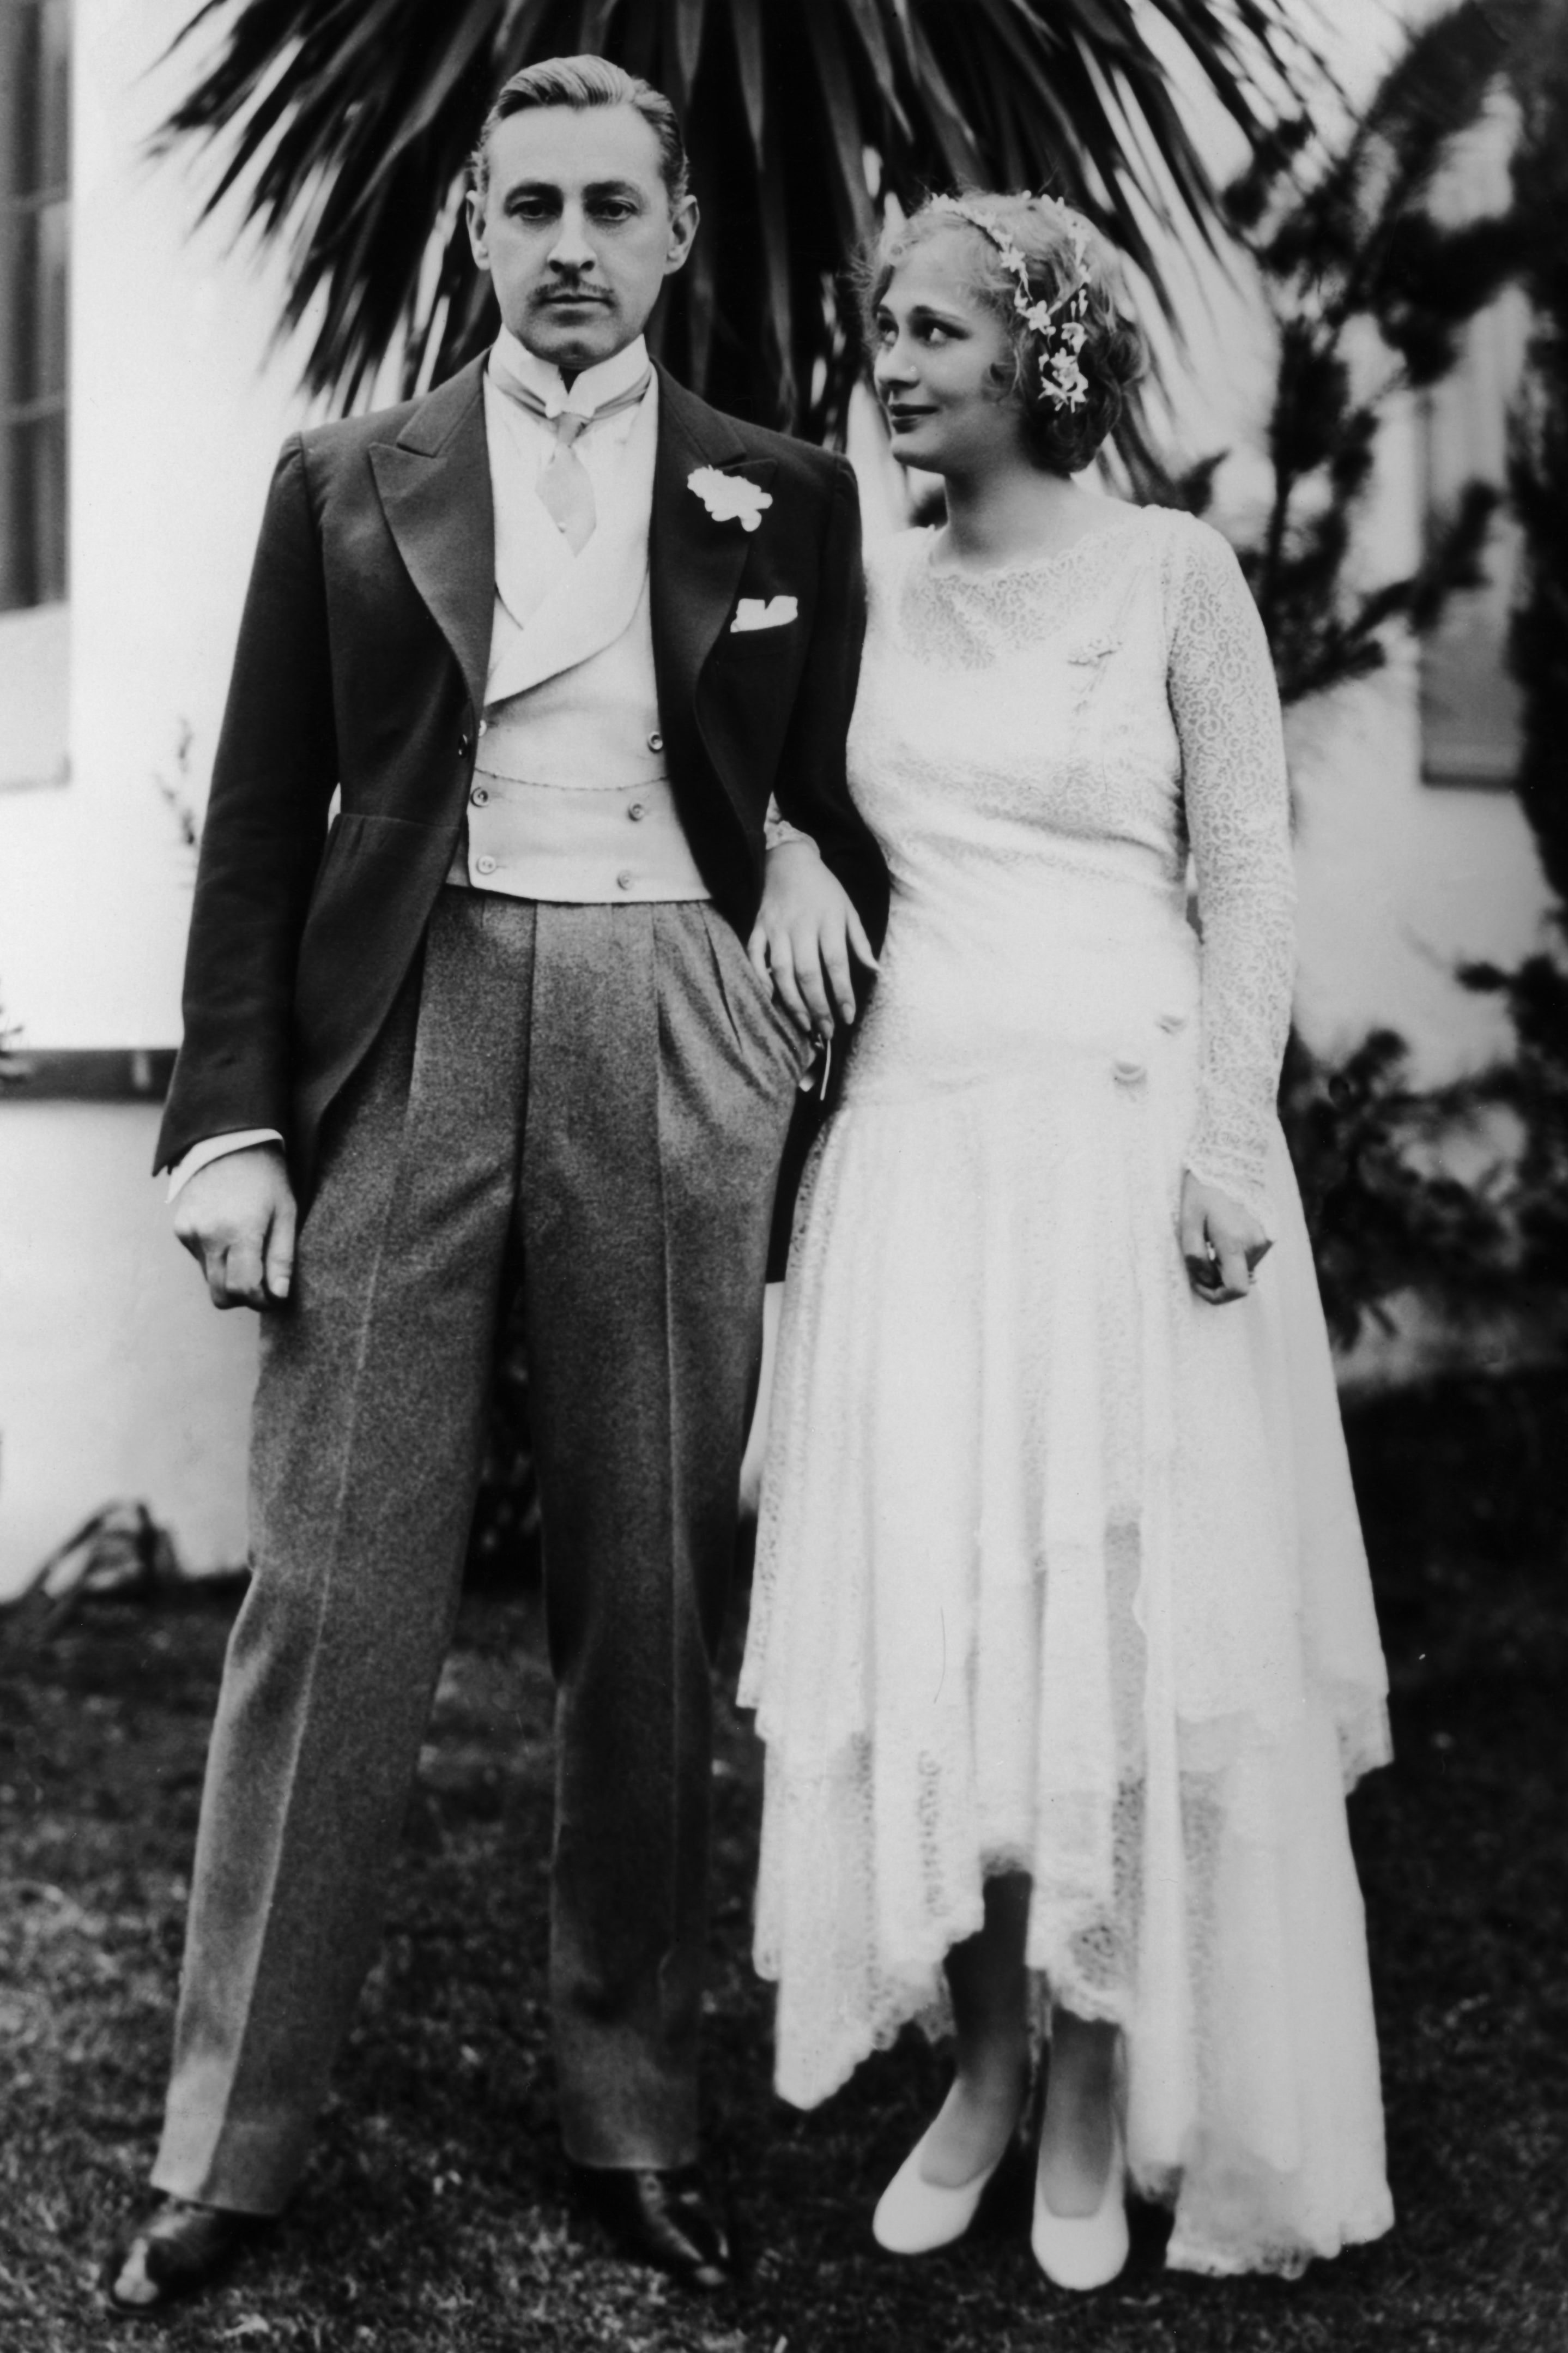 Dolores Costello's Wedding Dress Drew Barrymore comes from a long line of Hollywood stars and this is her grandfather, acclaimed actor John Barrymore, with her grandmother, his third wife Dolores Costello, in 1928. Some of Barrymore's most well-known films include Grand Hotel (1932), Twentieth Century (1934) and Midnight (1939), which have been inducted into the National Film Registry .